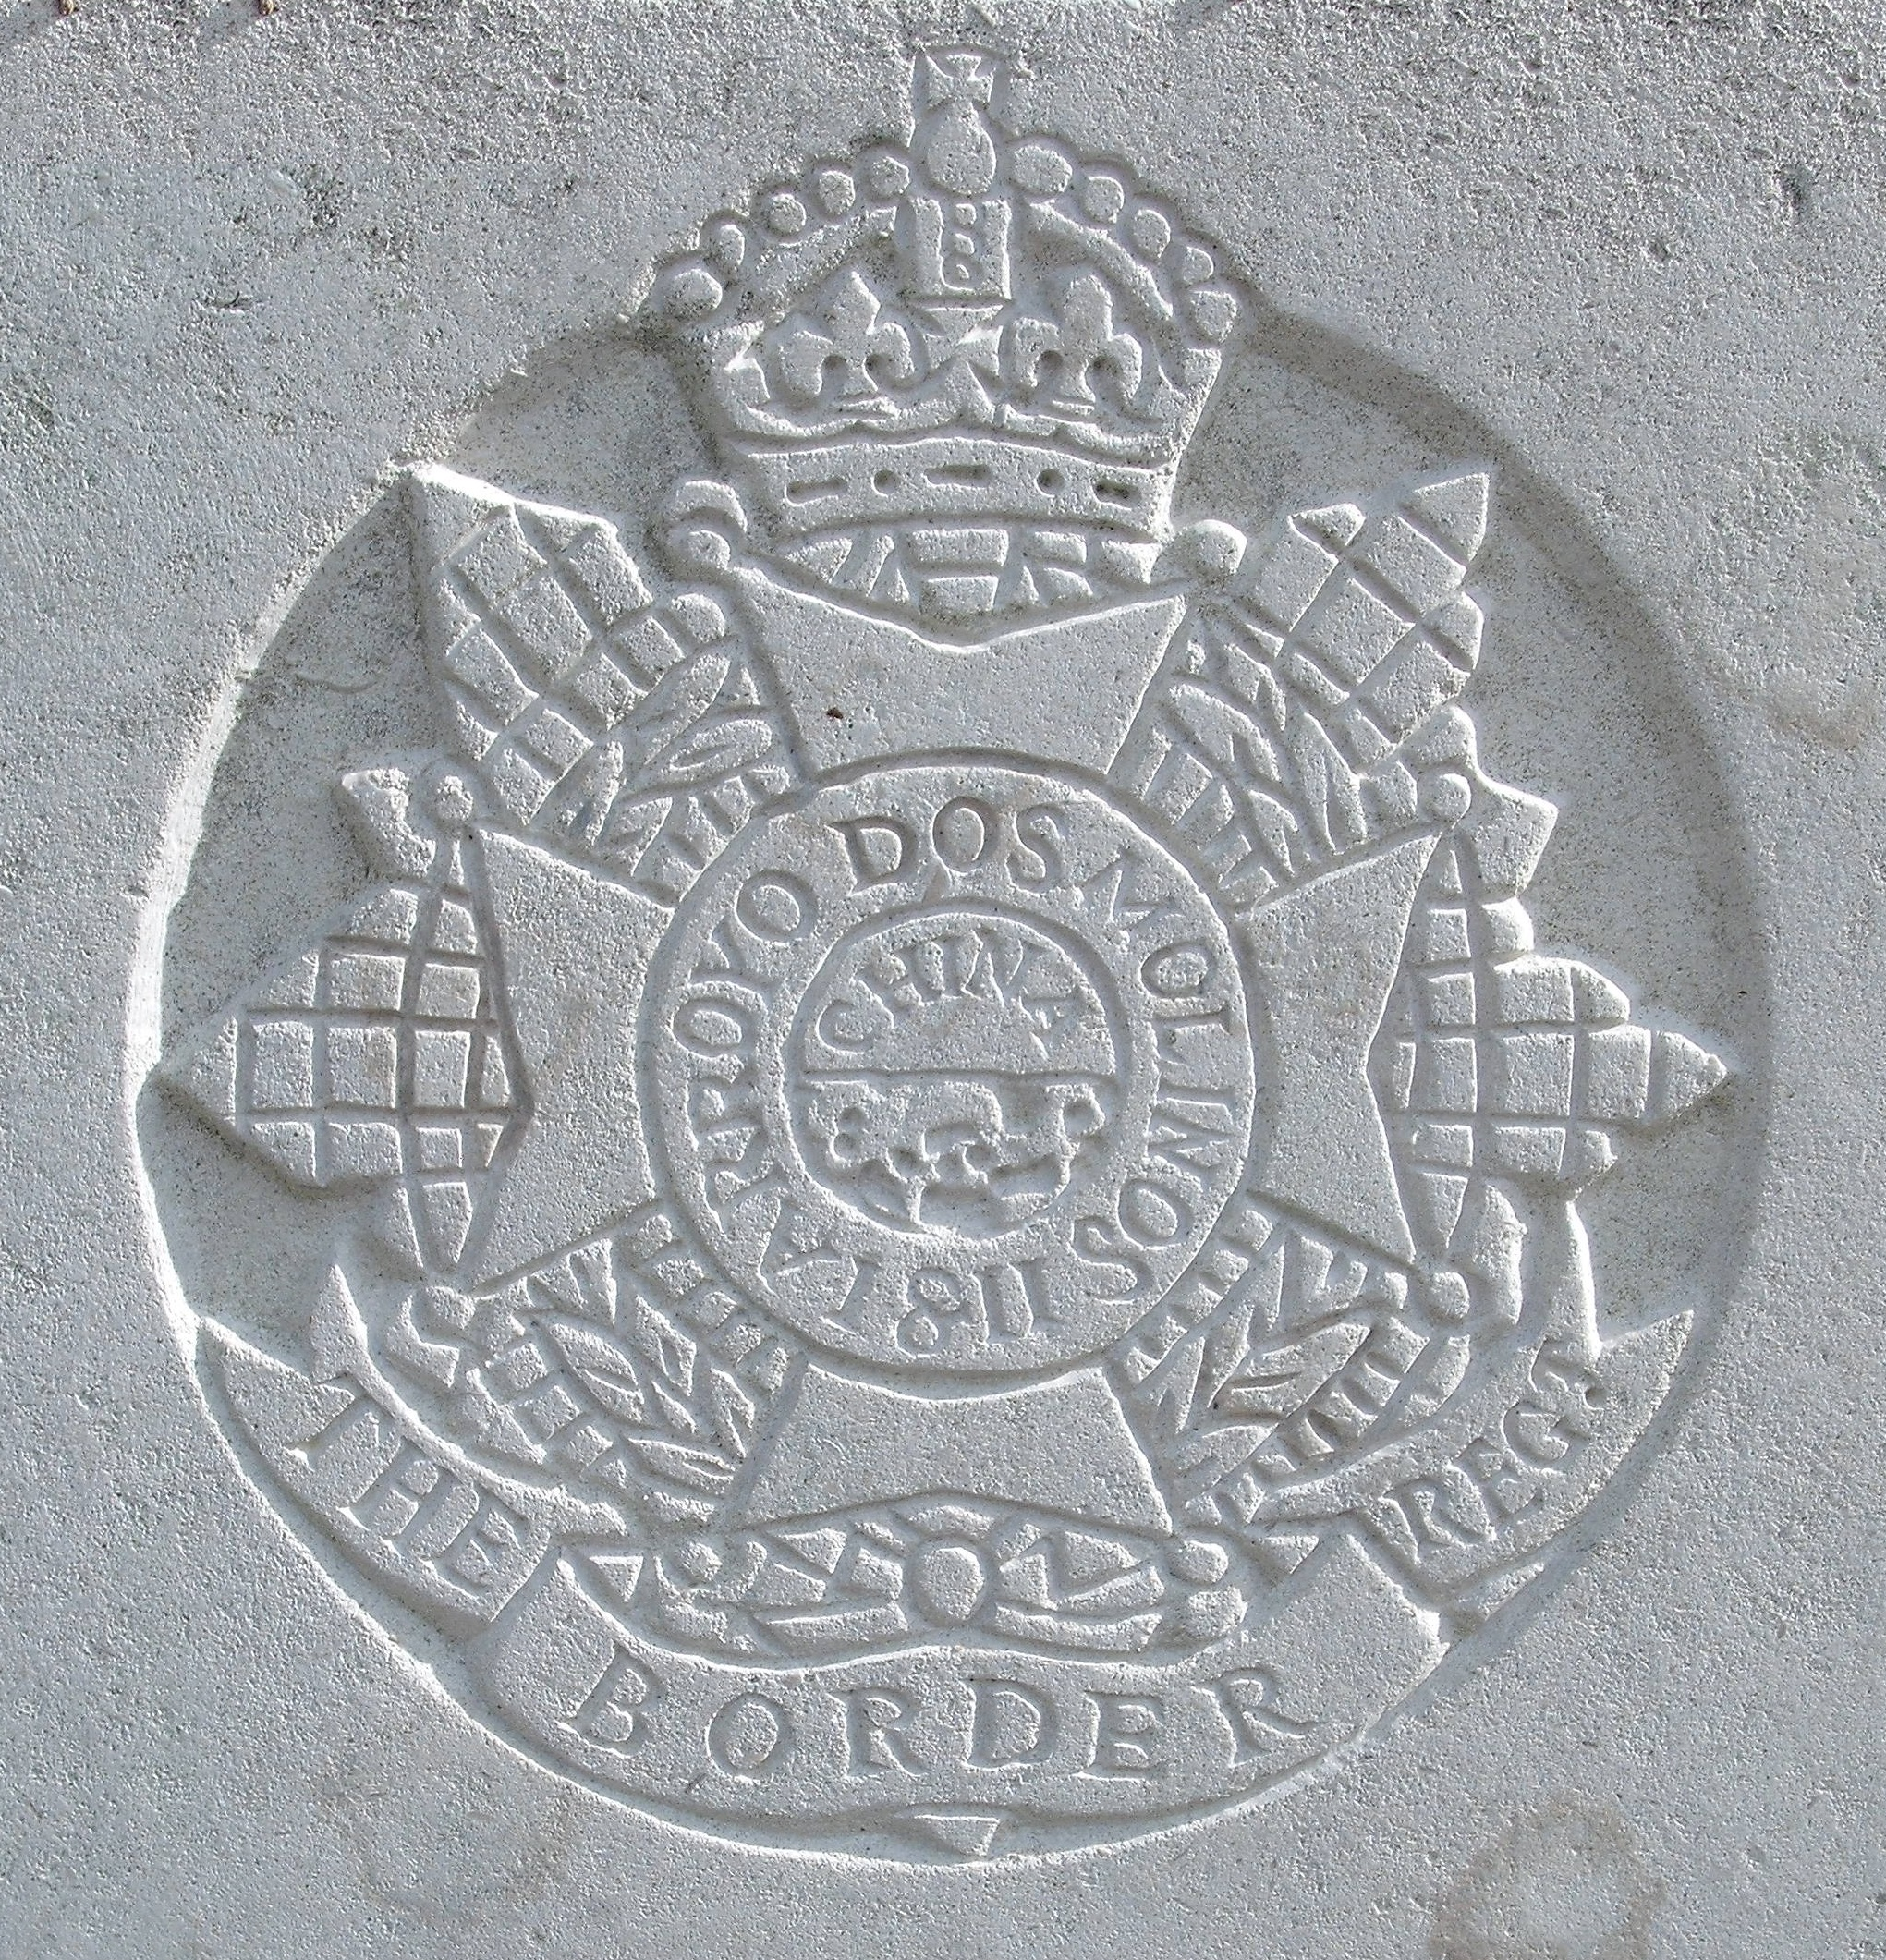 Capbadge of the Border Regiment on headstone